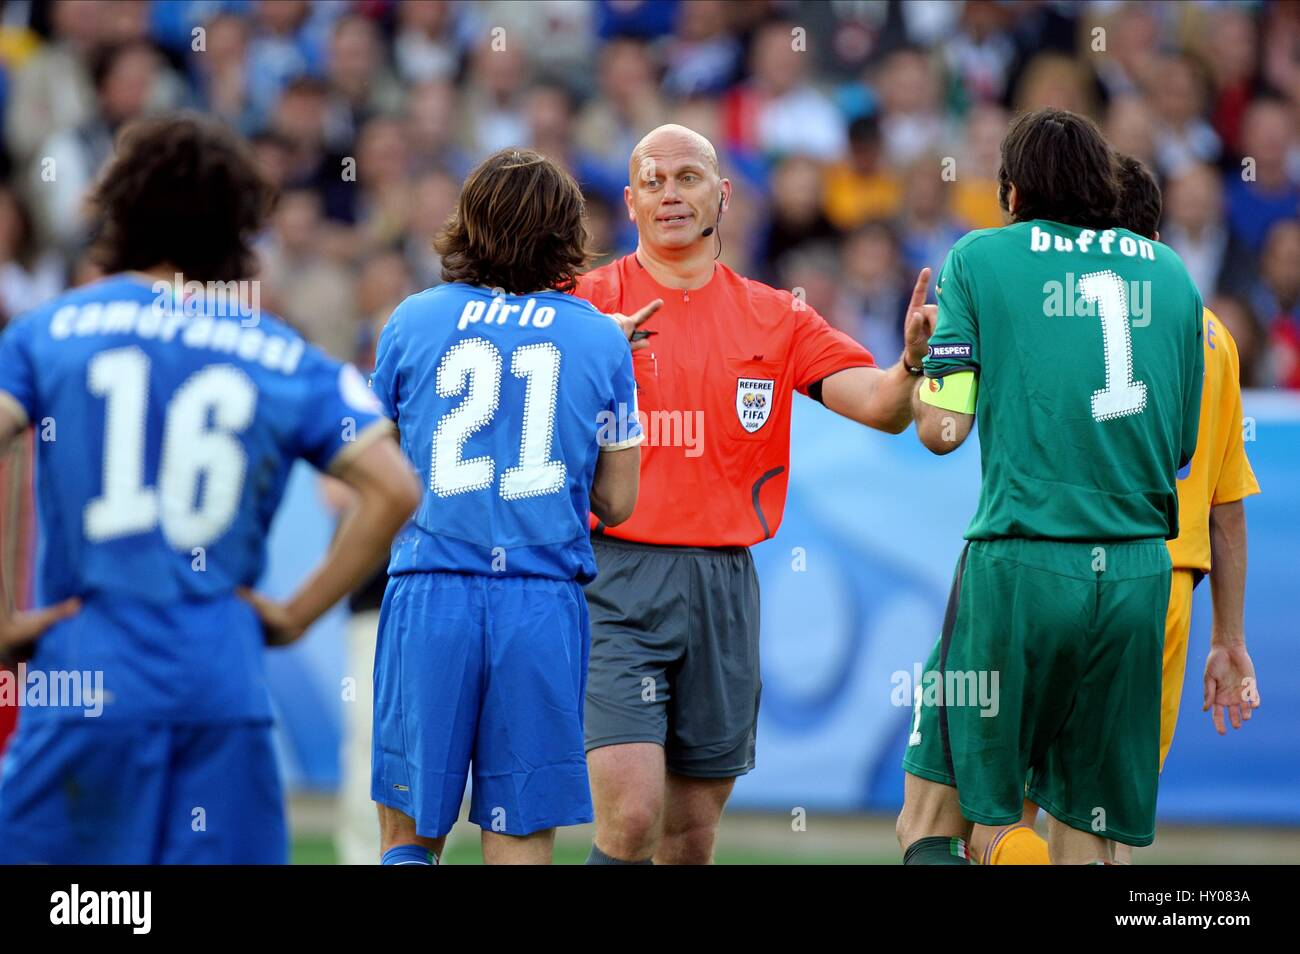 PLAYERS APPEAL TO REFEREE ITALY V ROMANIA LETZIGRUND STADUIM ZURICH SWITZERLAND 13 June 2008 - Stock Image